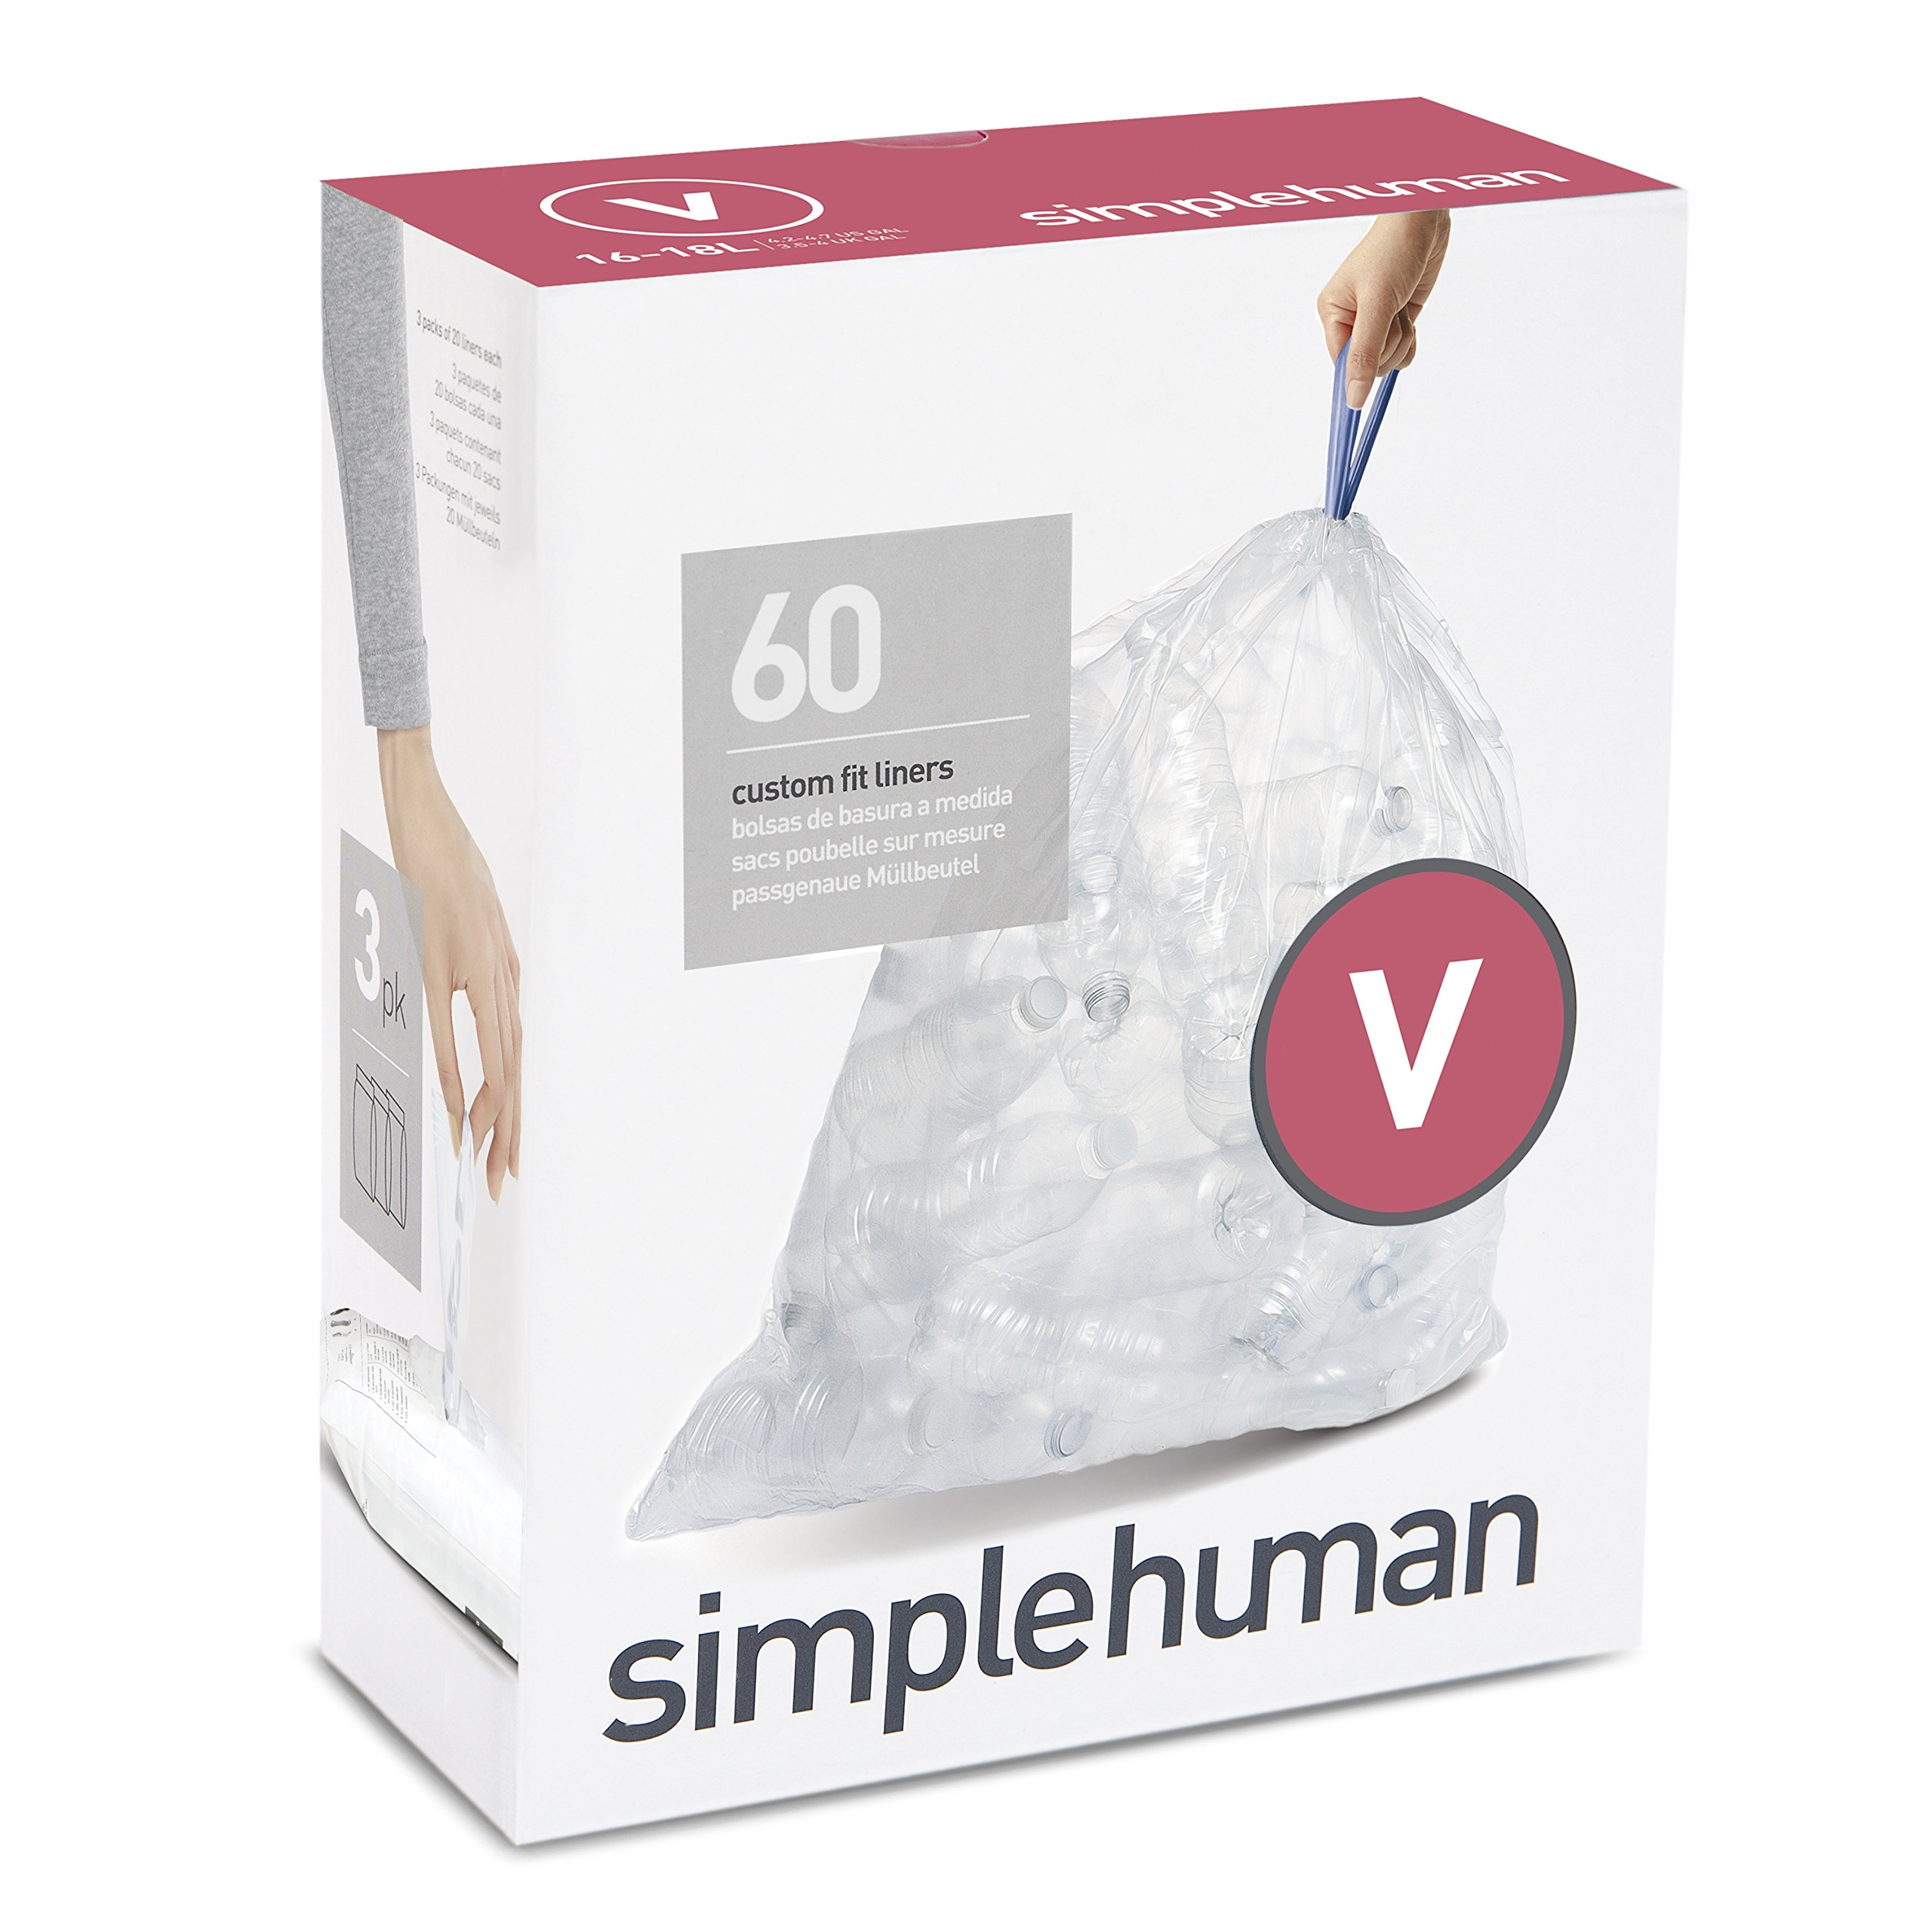 simplehuman Code V Custom Fit Recycling Trash Can Liner, 3 Refill Packs (60 Count), 16-18 L/4.2-4.8 Gal Bag, Clear